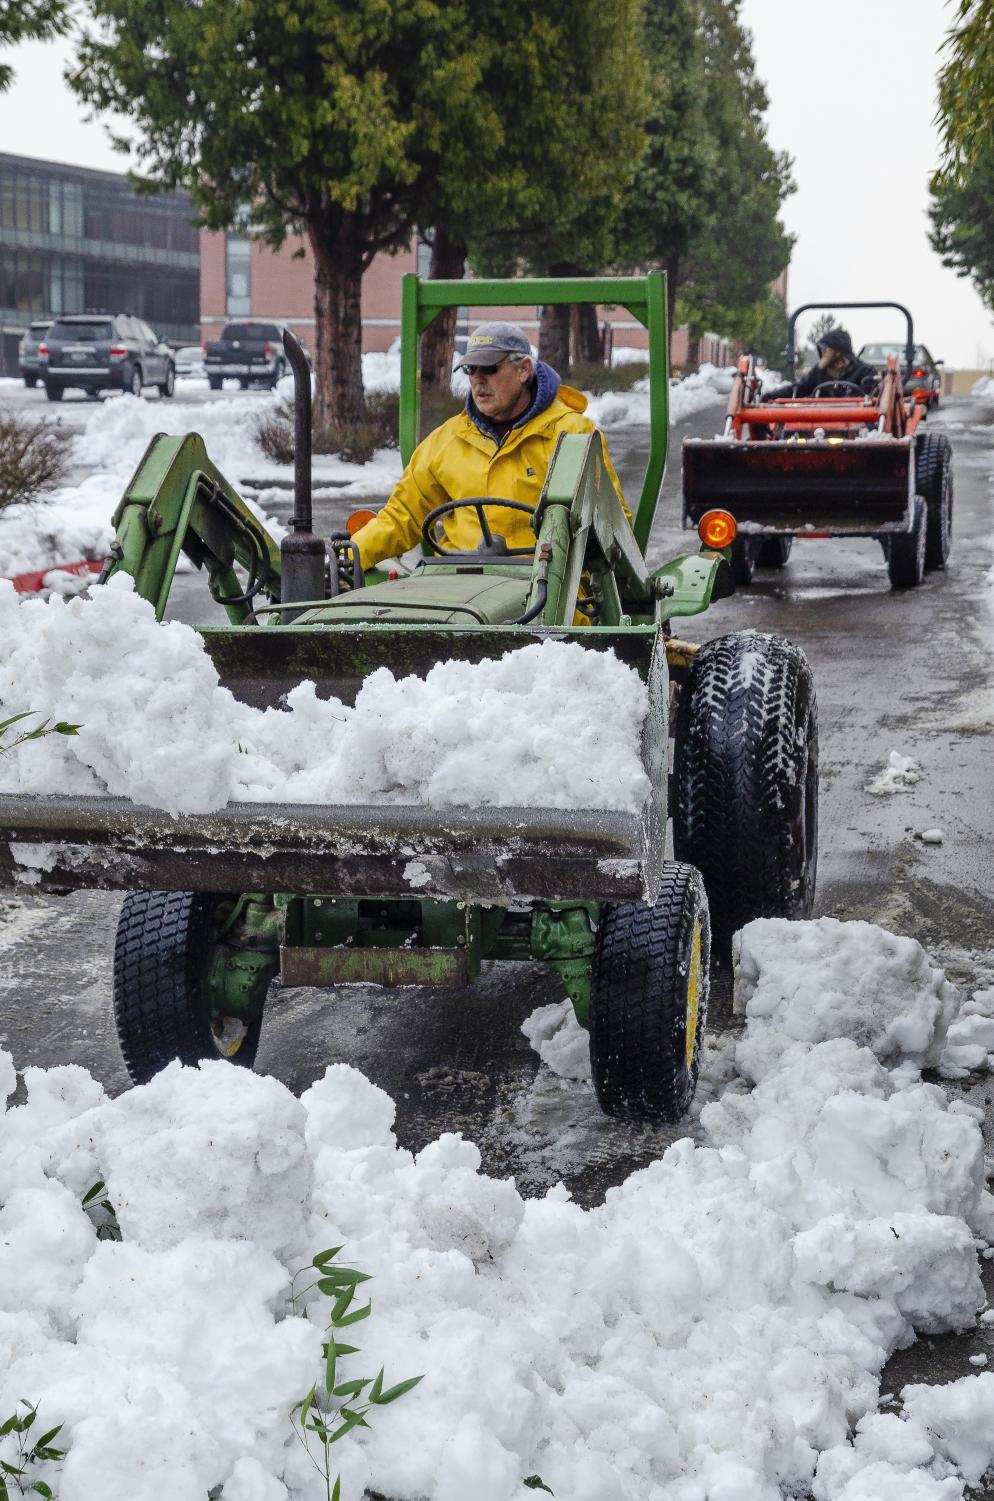 EvCC groundskeepers plow snow in various parking lots around EvCC on Wednesday, February 13.